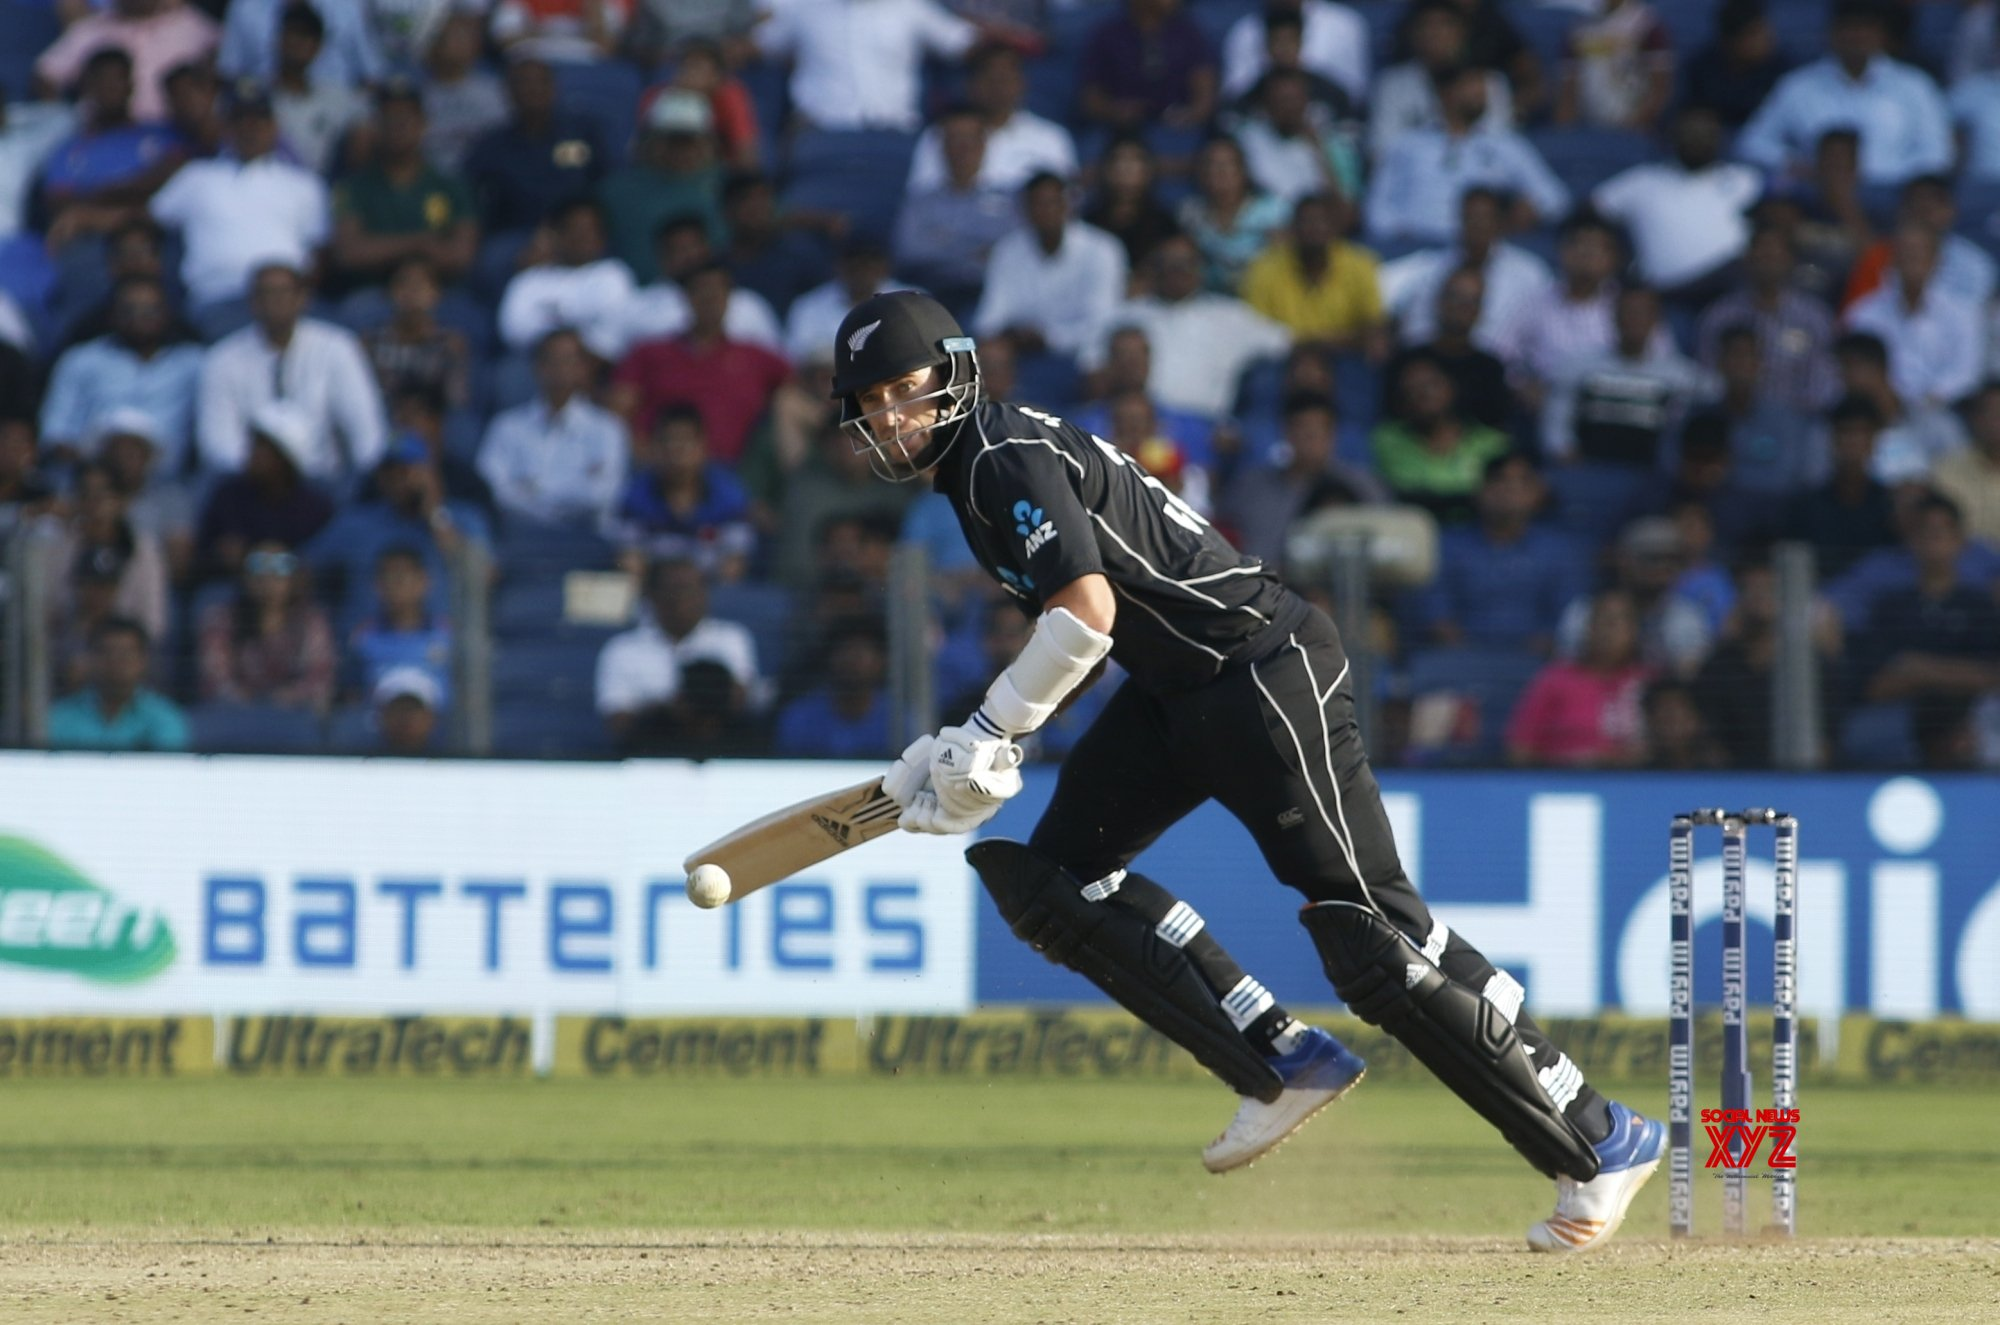 Southee equals Tendulkar's six-hitting record in Tests